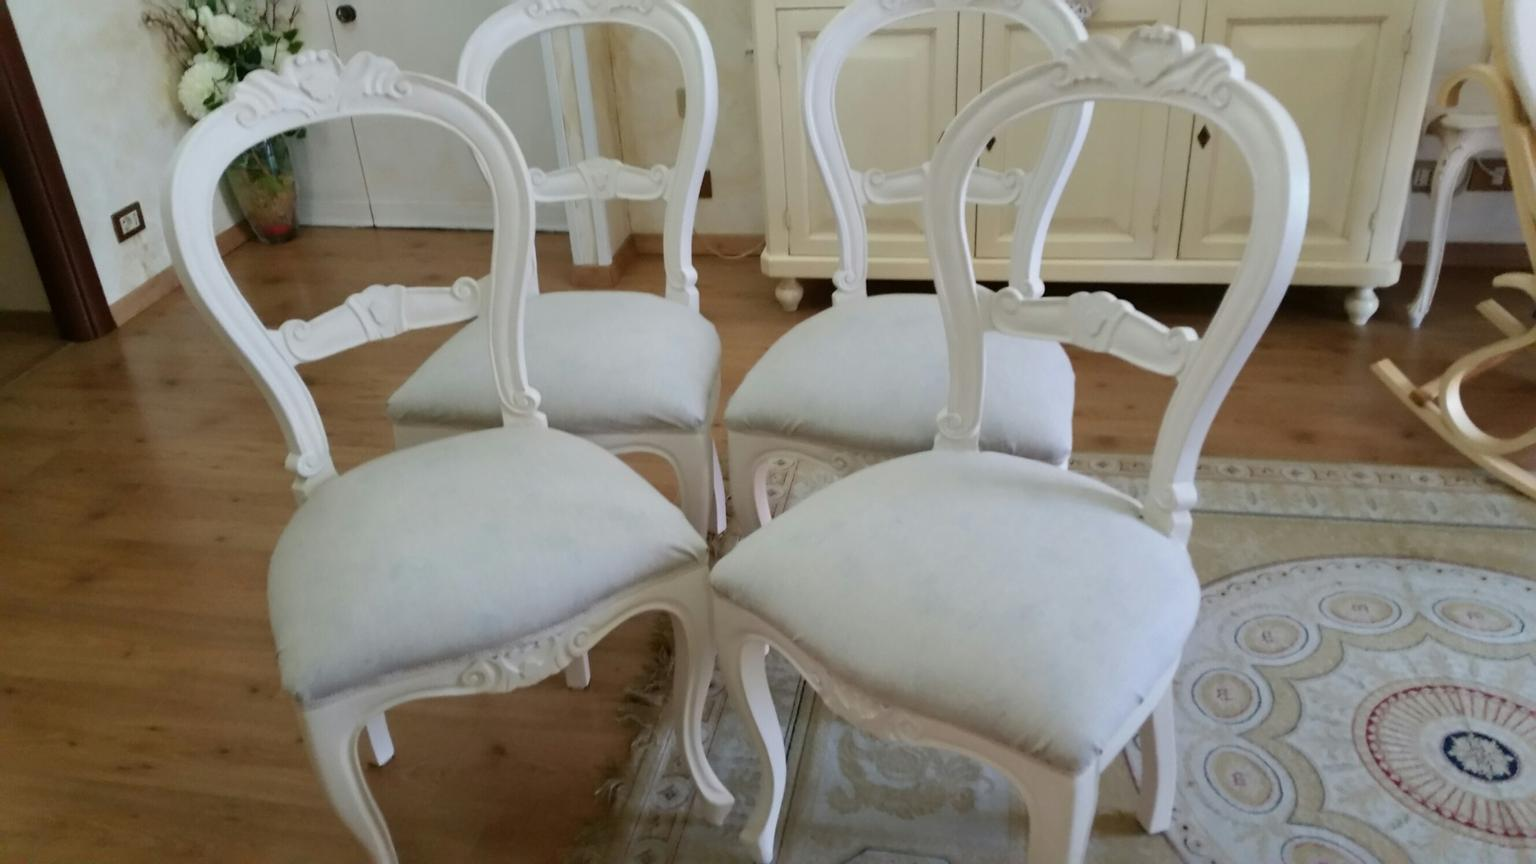 Sedie Shabby Chic Roma : Sedie shabby chic in 00169 roma for u20ac240.00 for sale shpock